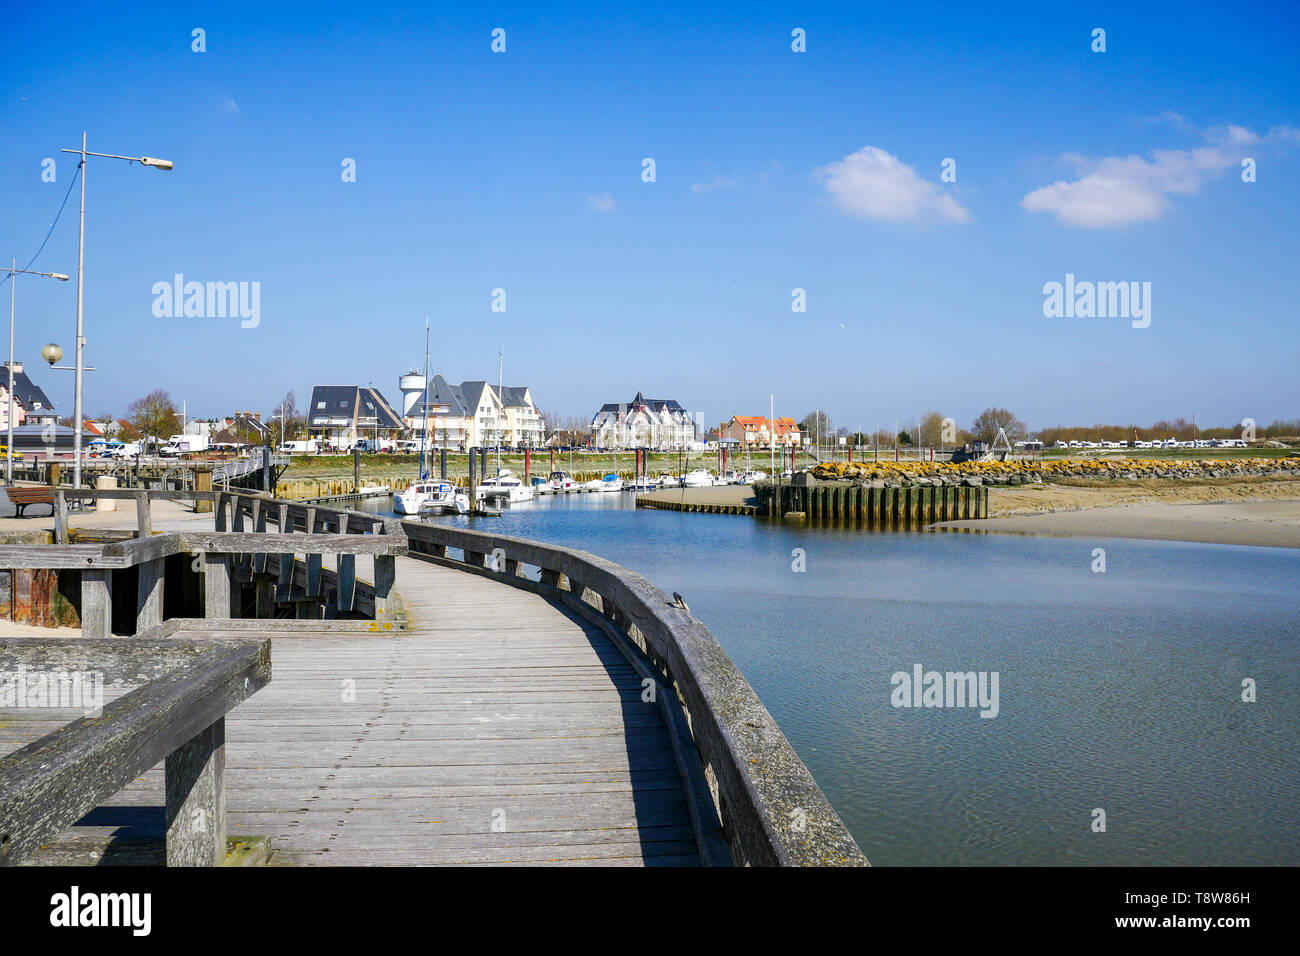 The sailing harbor at low tide, Le Crotois, Bay of Somme,  Hauts-de-France, France - Stock Image